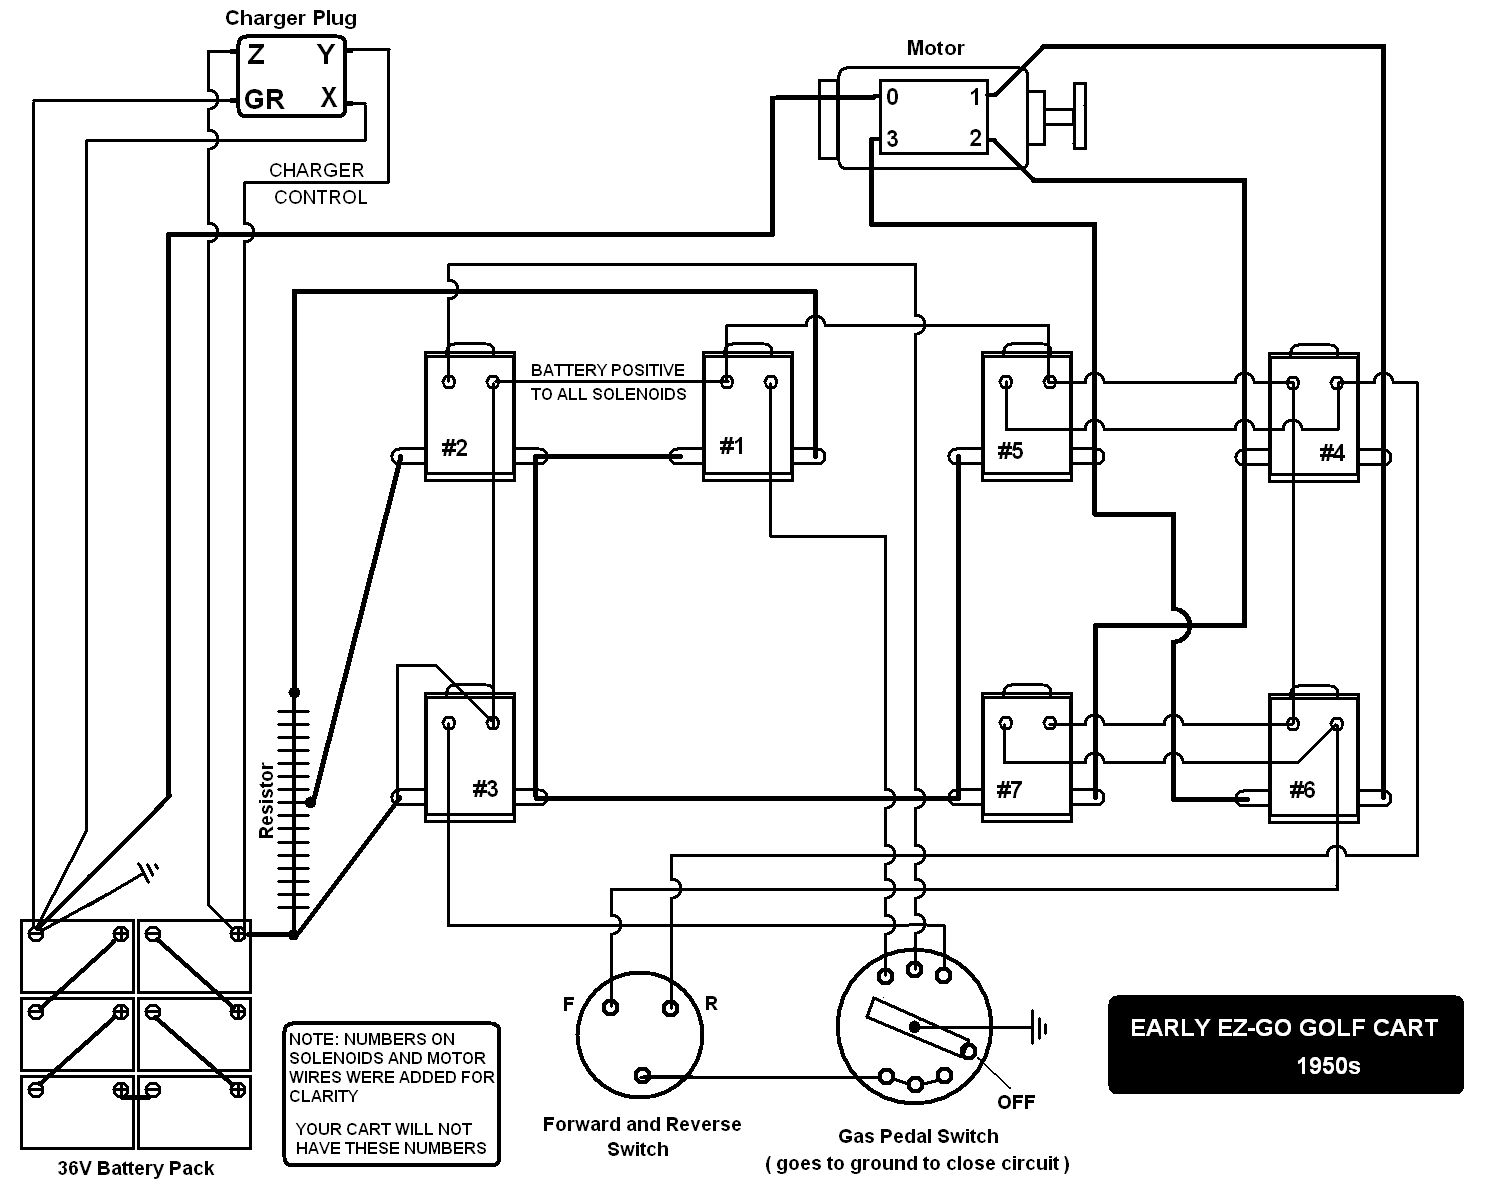 EZ Go Textron Wiring Diagram http://gyjajoju.site40.net/battery-diagram-series-ezgo.php